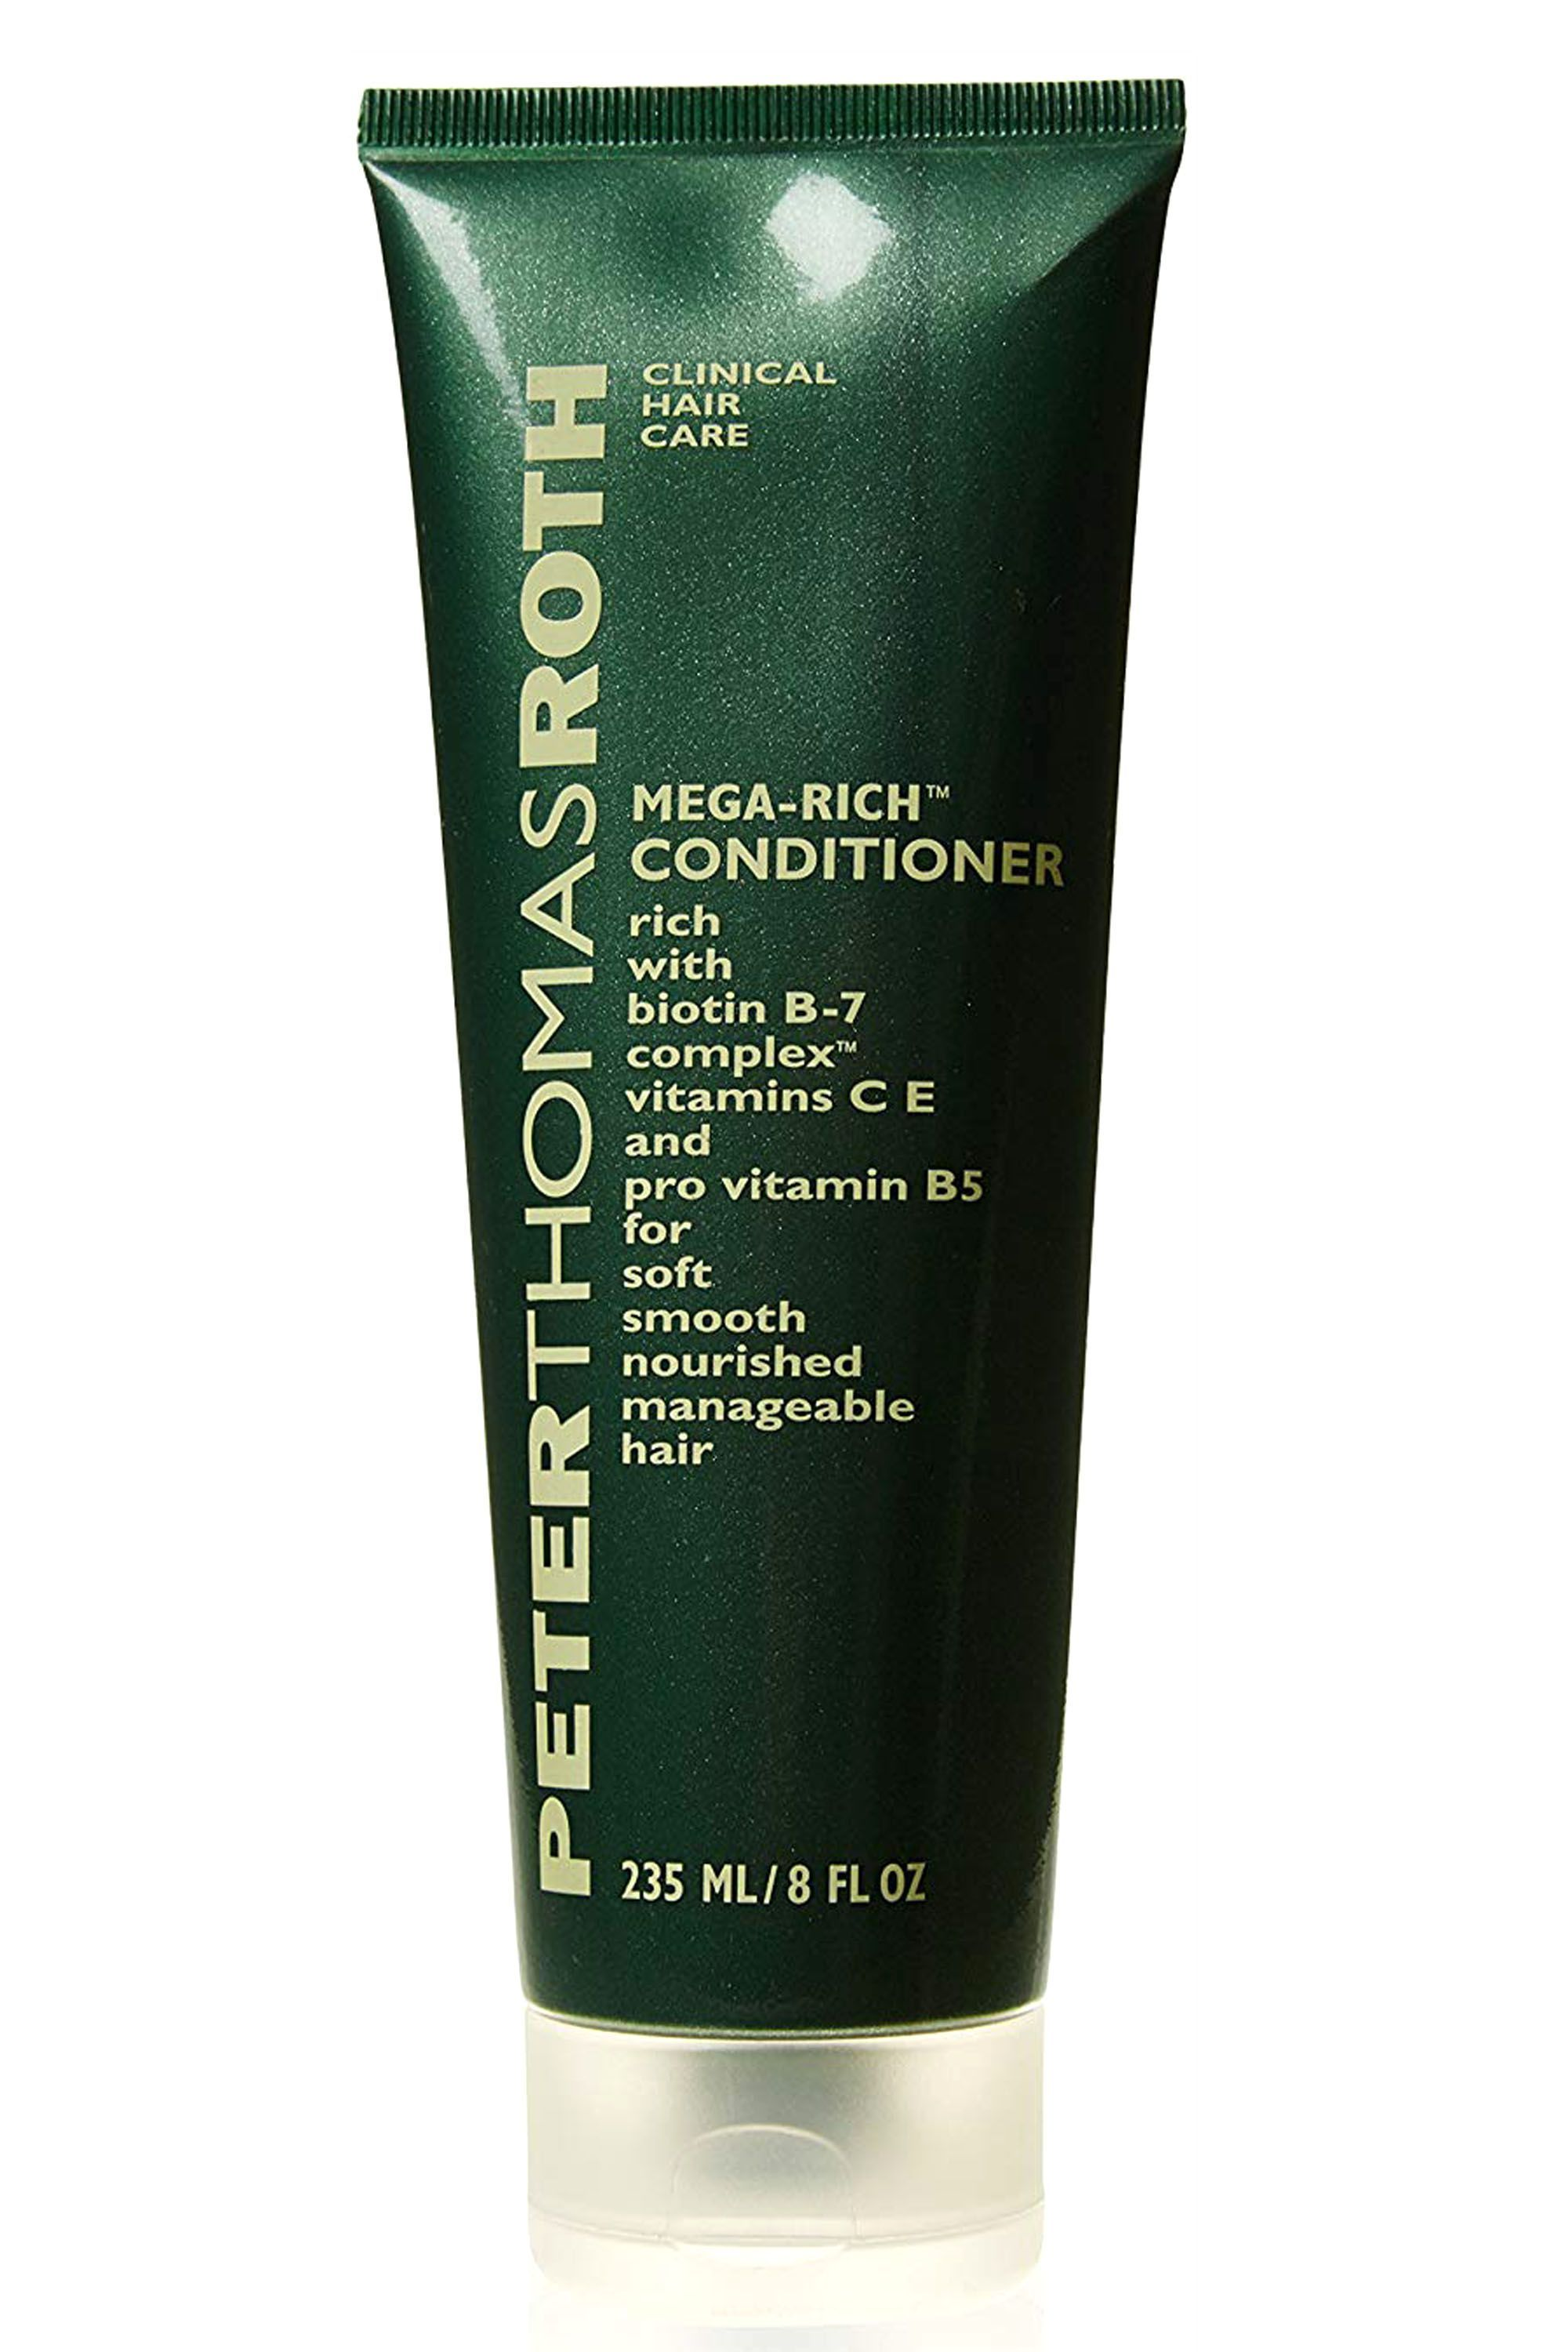 Rihannas Favorite Hair Products Are Actually Super Affordable Gieve Eucalyptus Conditioner Peter Thomas Roth Mega Rich